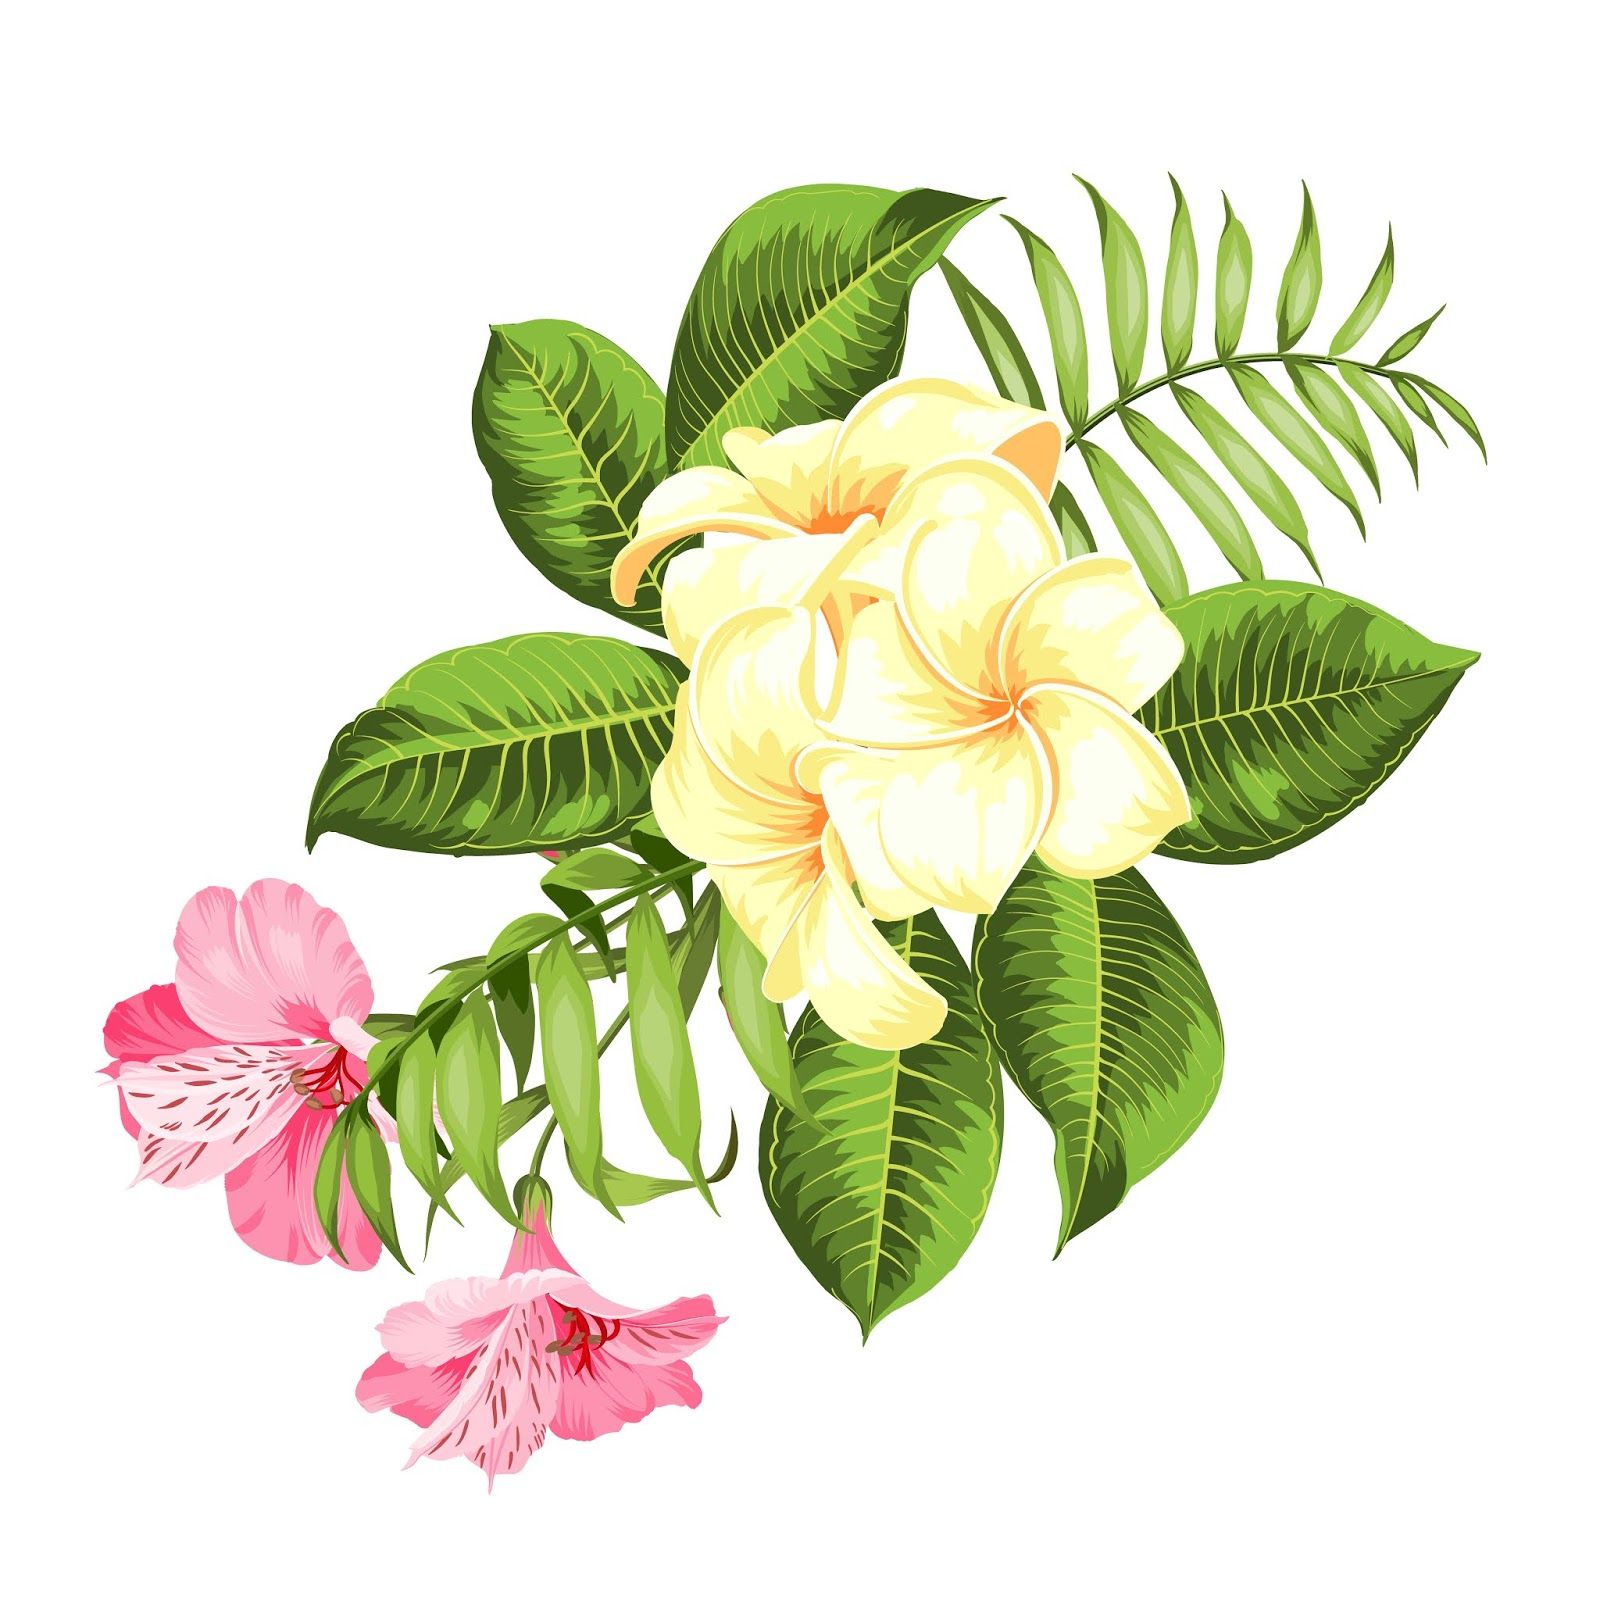 Tropical Flower White Background Vector Illustration Free Download Vector Cdr Ai Eps And Png Formats